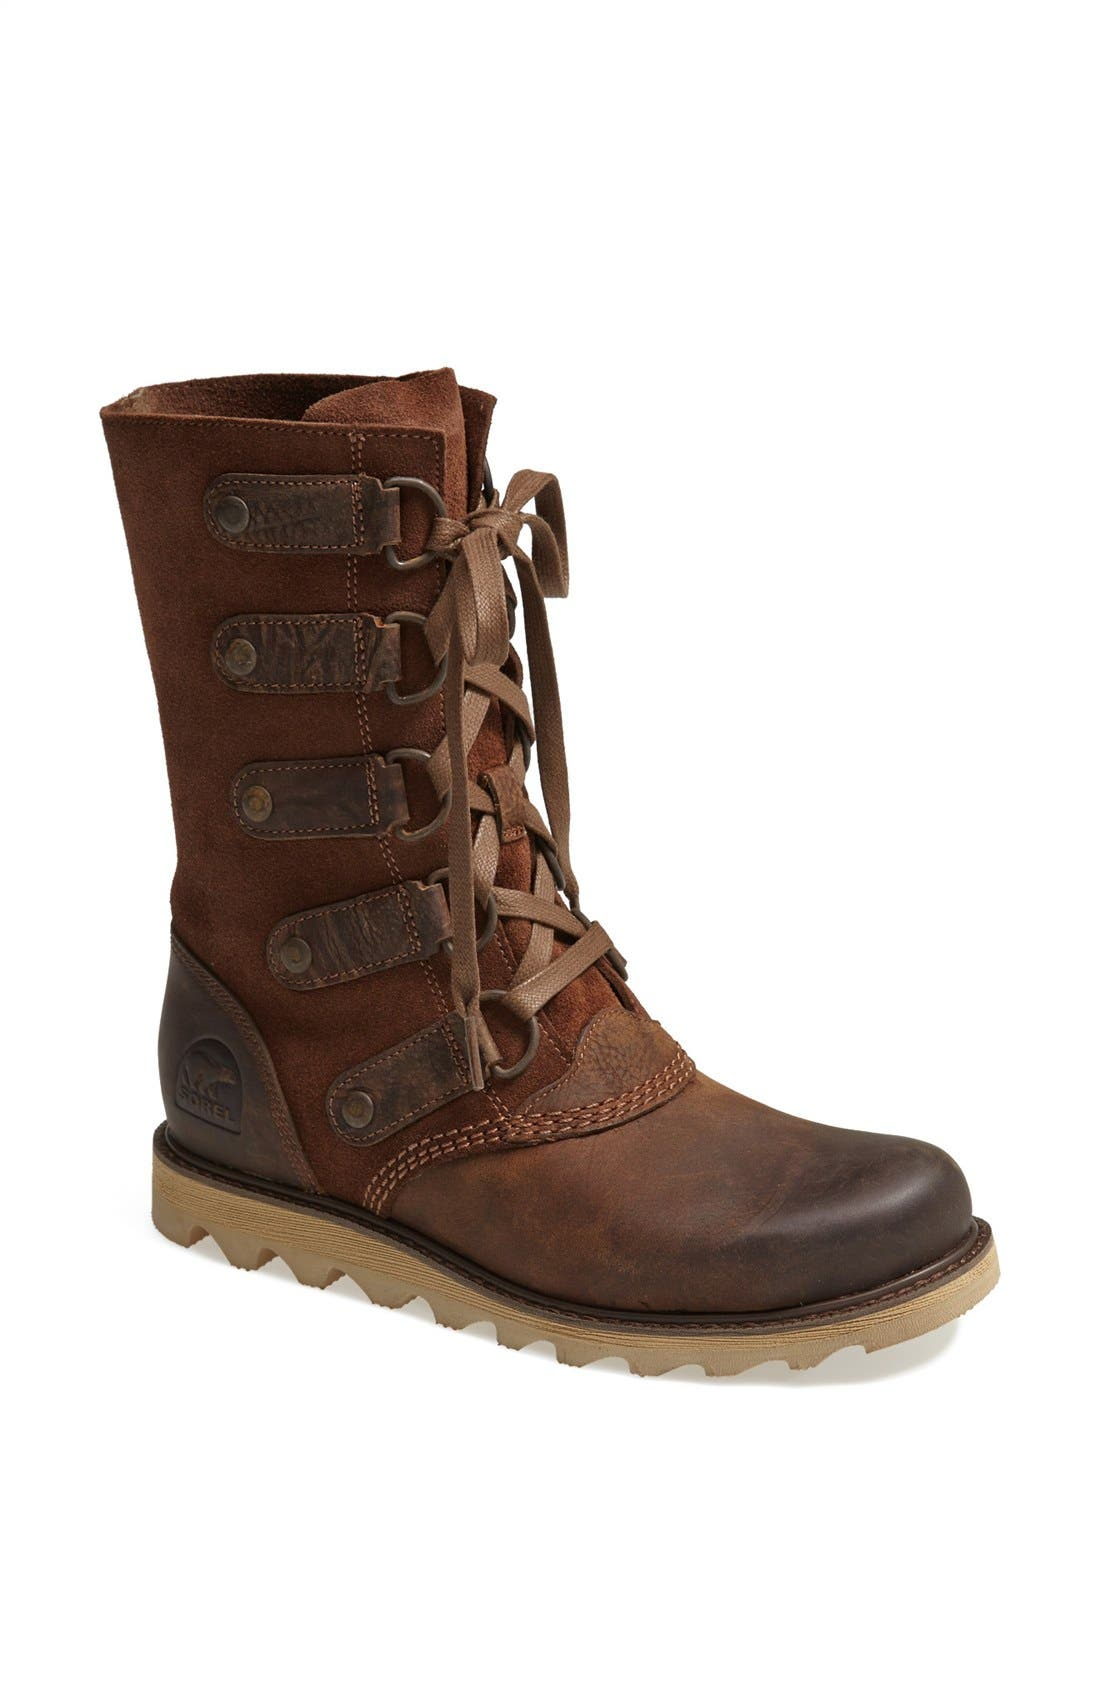 SOREL,                             'Scotia' Lace-Up Waterproof Leather Boot,                             Main thumbnail 1, color,                             202